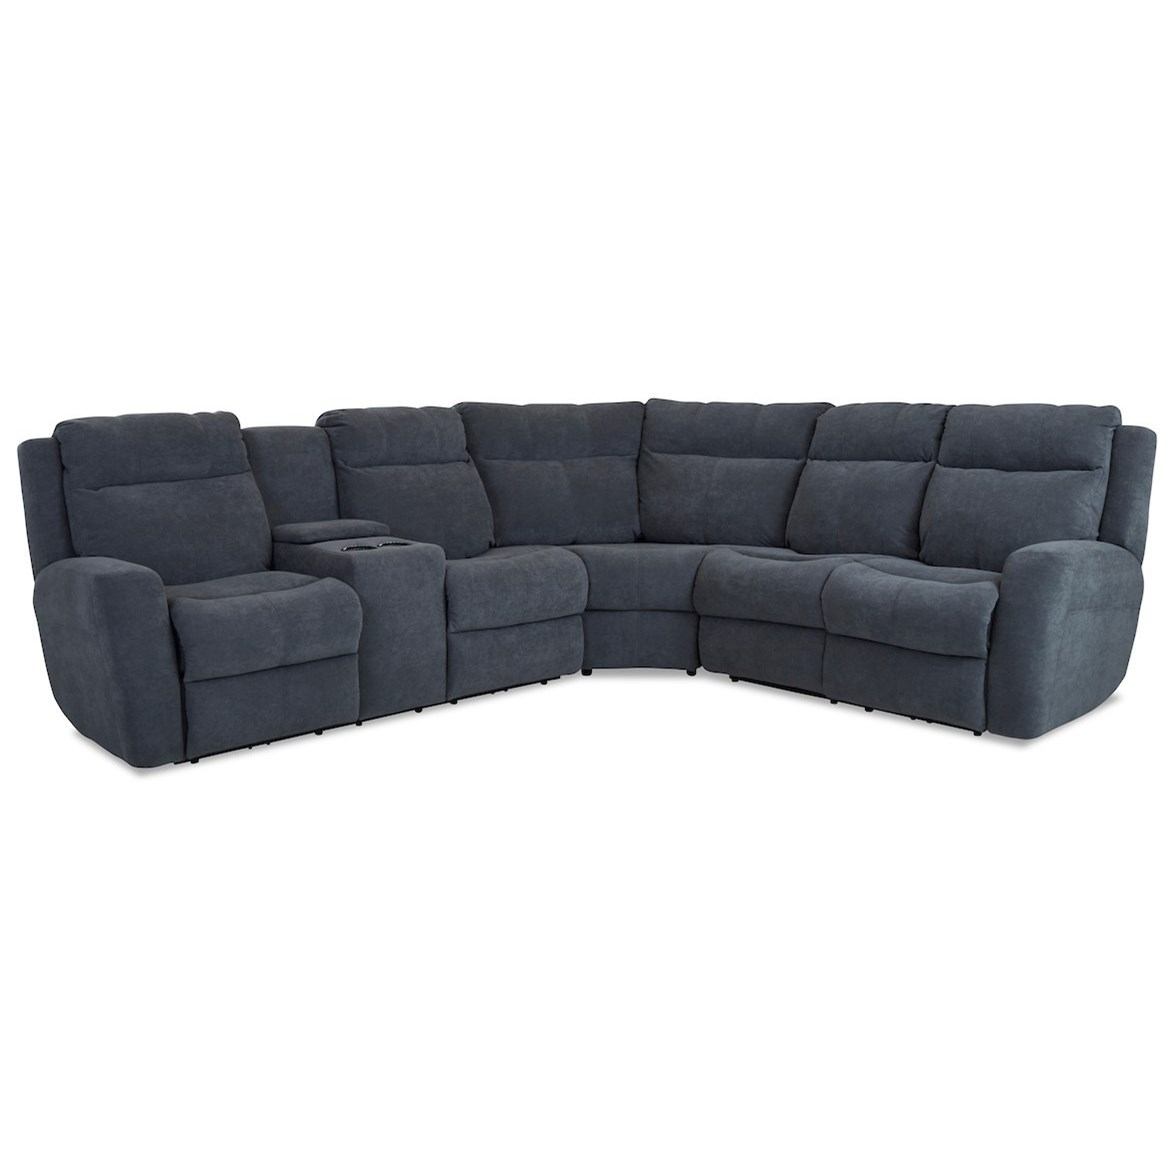 Brooks 4-Seat Reclining Sectional w/ LAF Console by Klaussner at Johnny Janosik